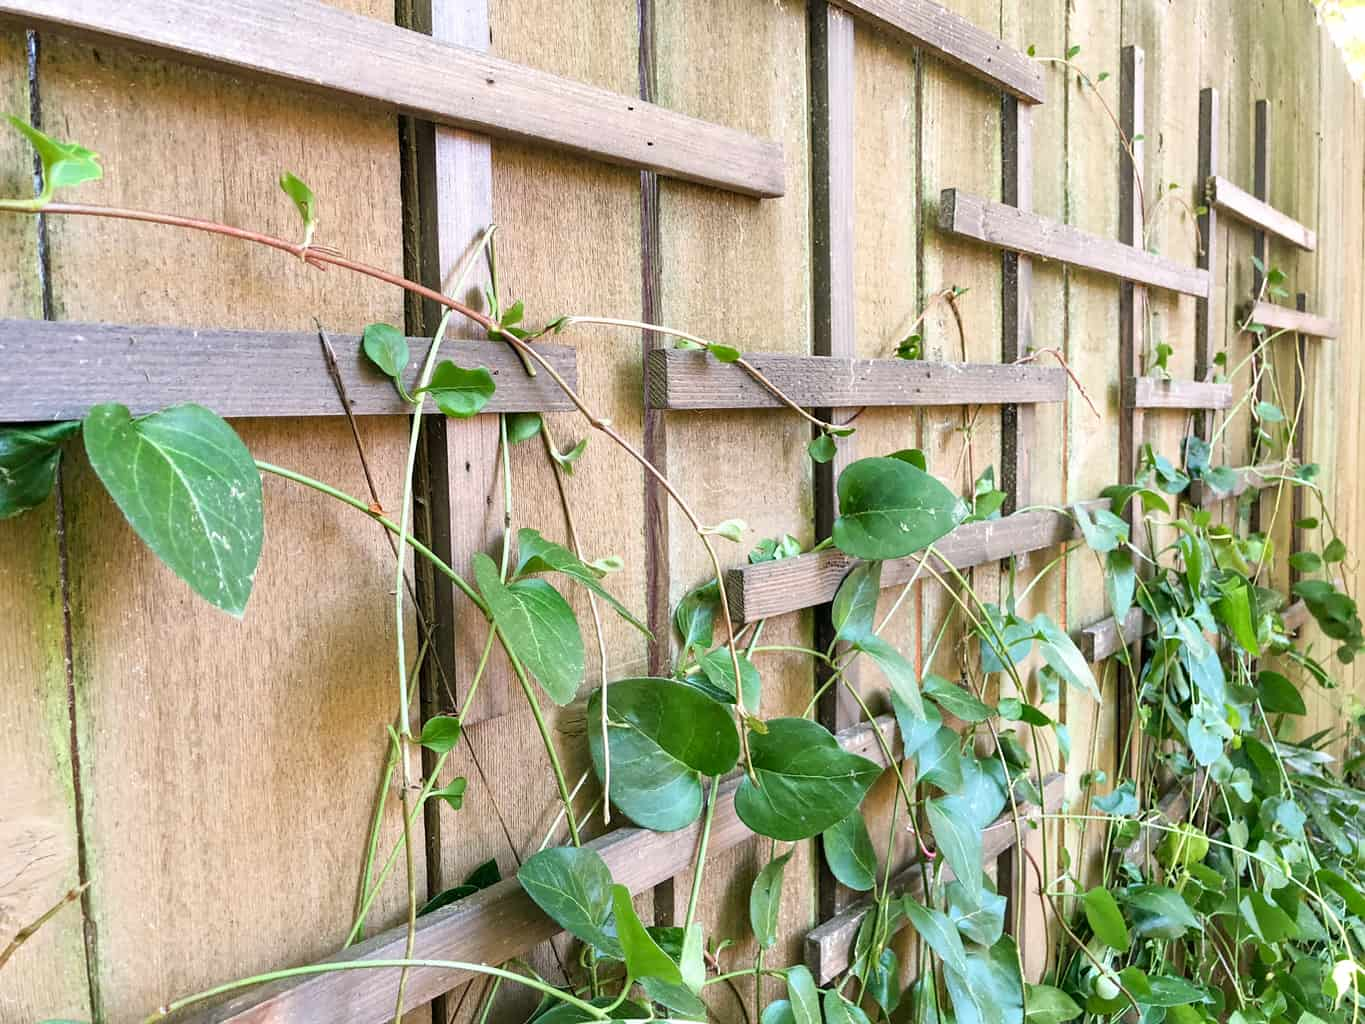 close up view of clematis trellis on fence